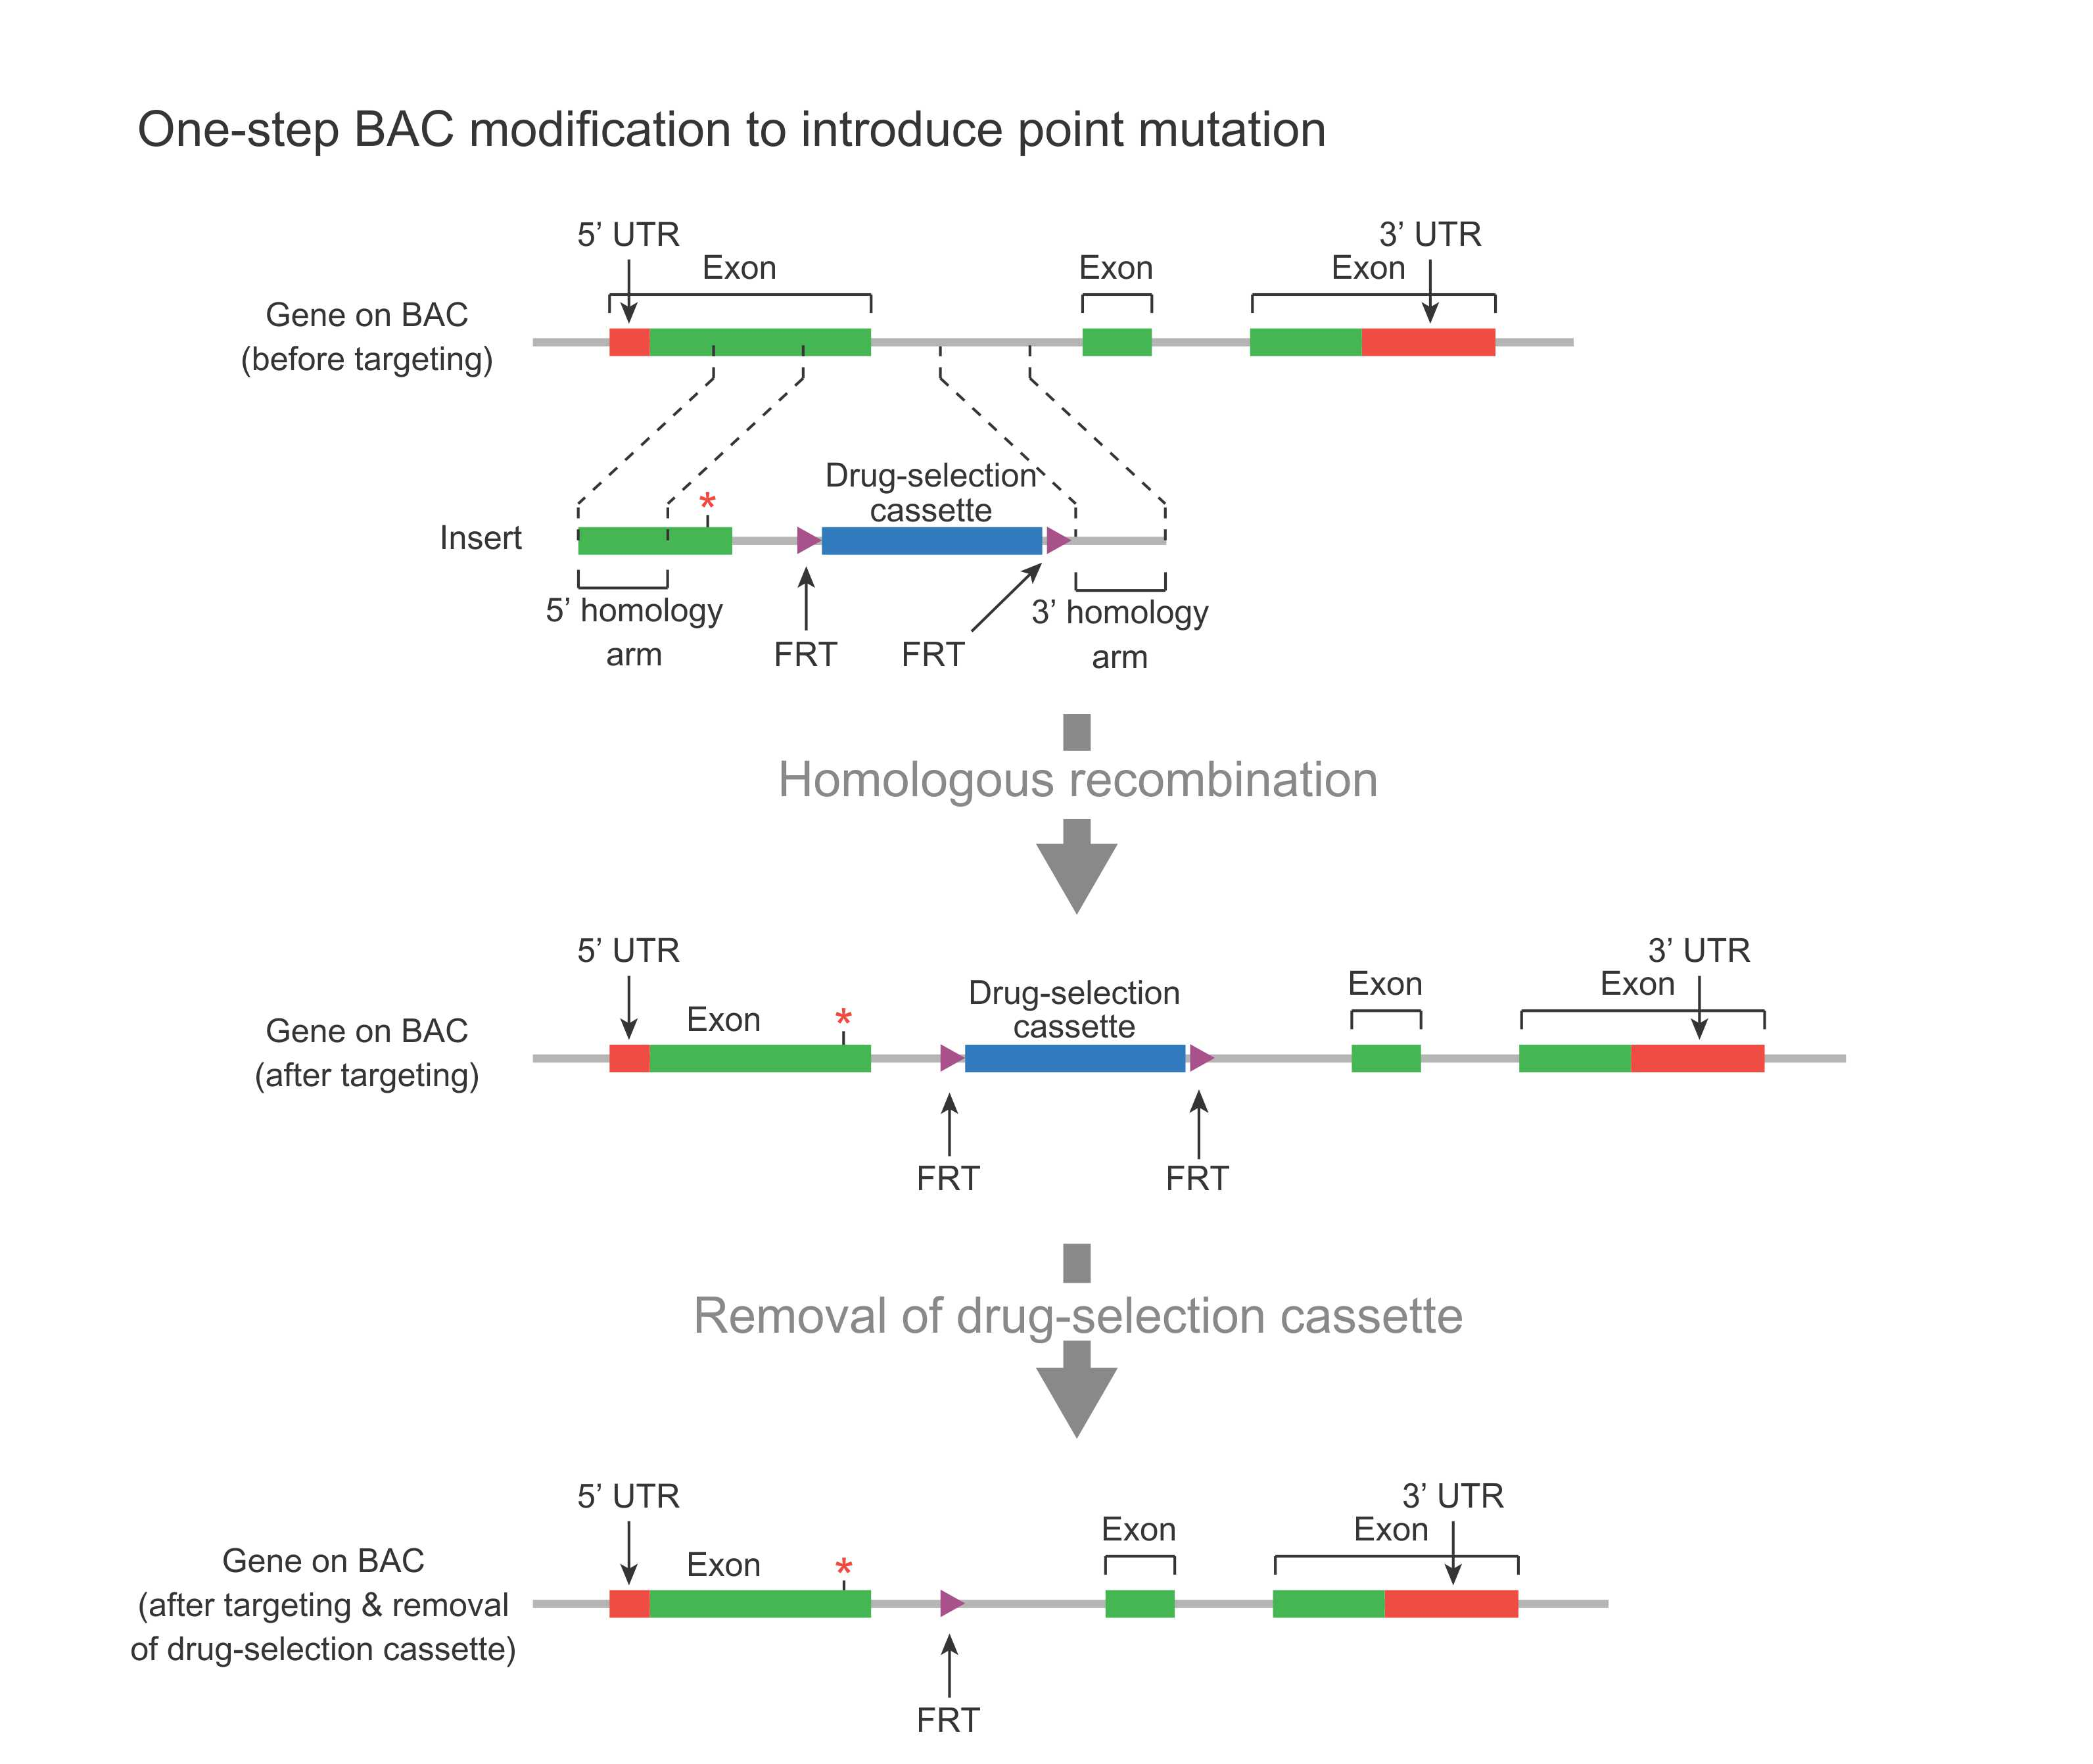 one-step BAC modification to introduce point mutation